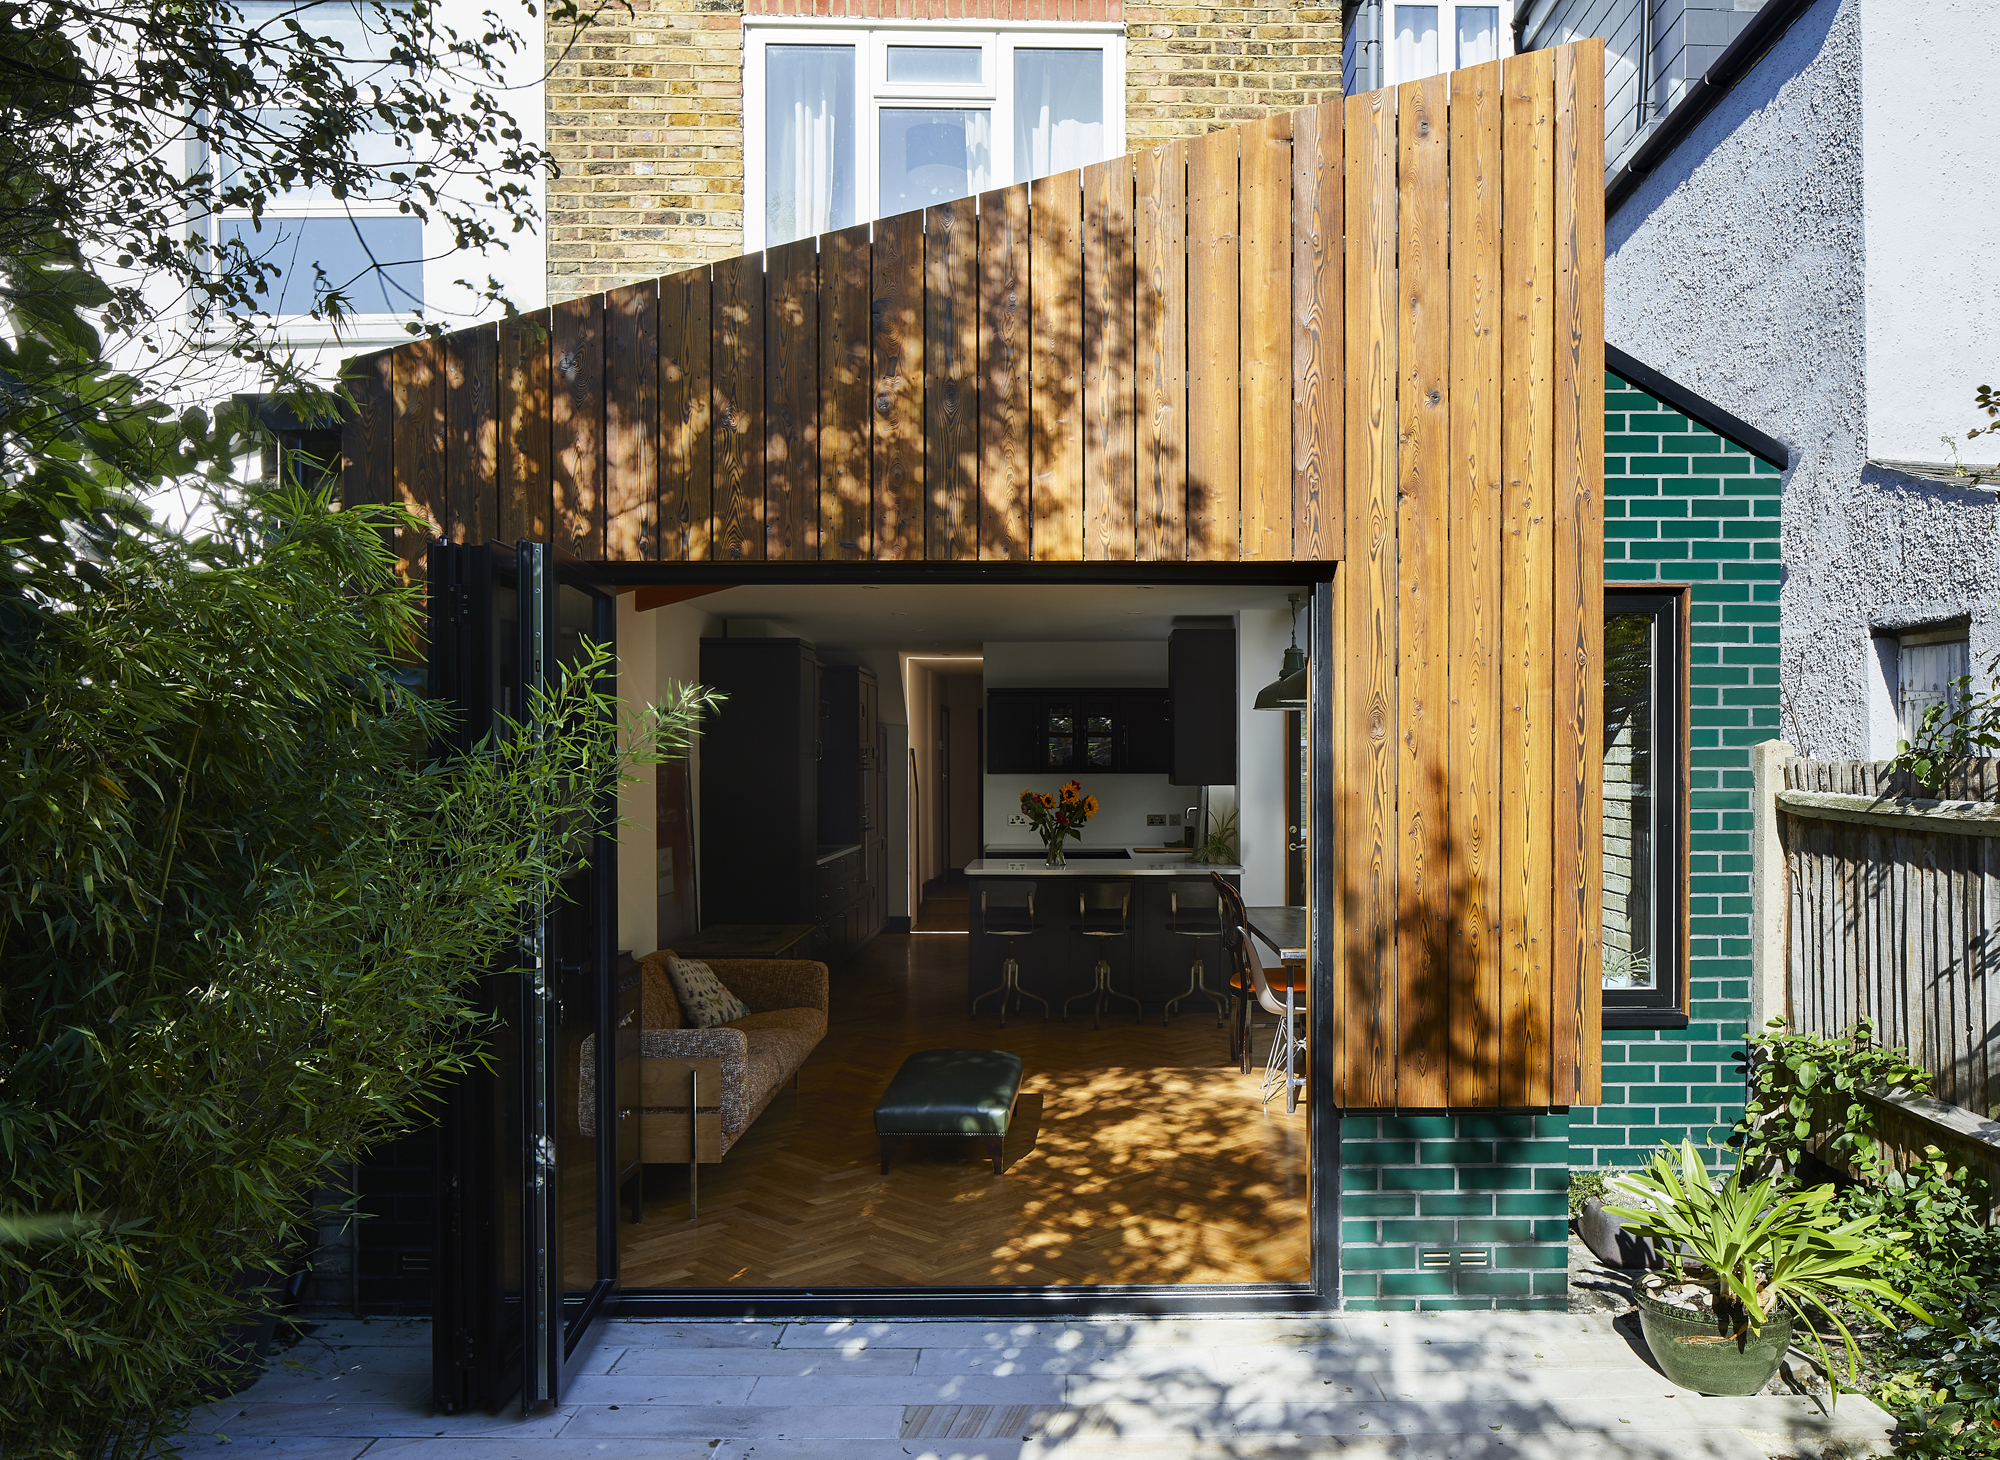 More living space wrapped in glazed brick and charred timber